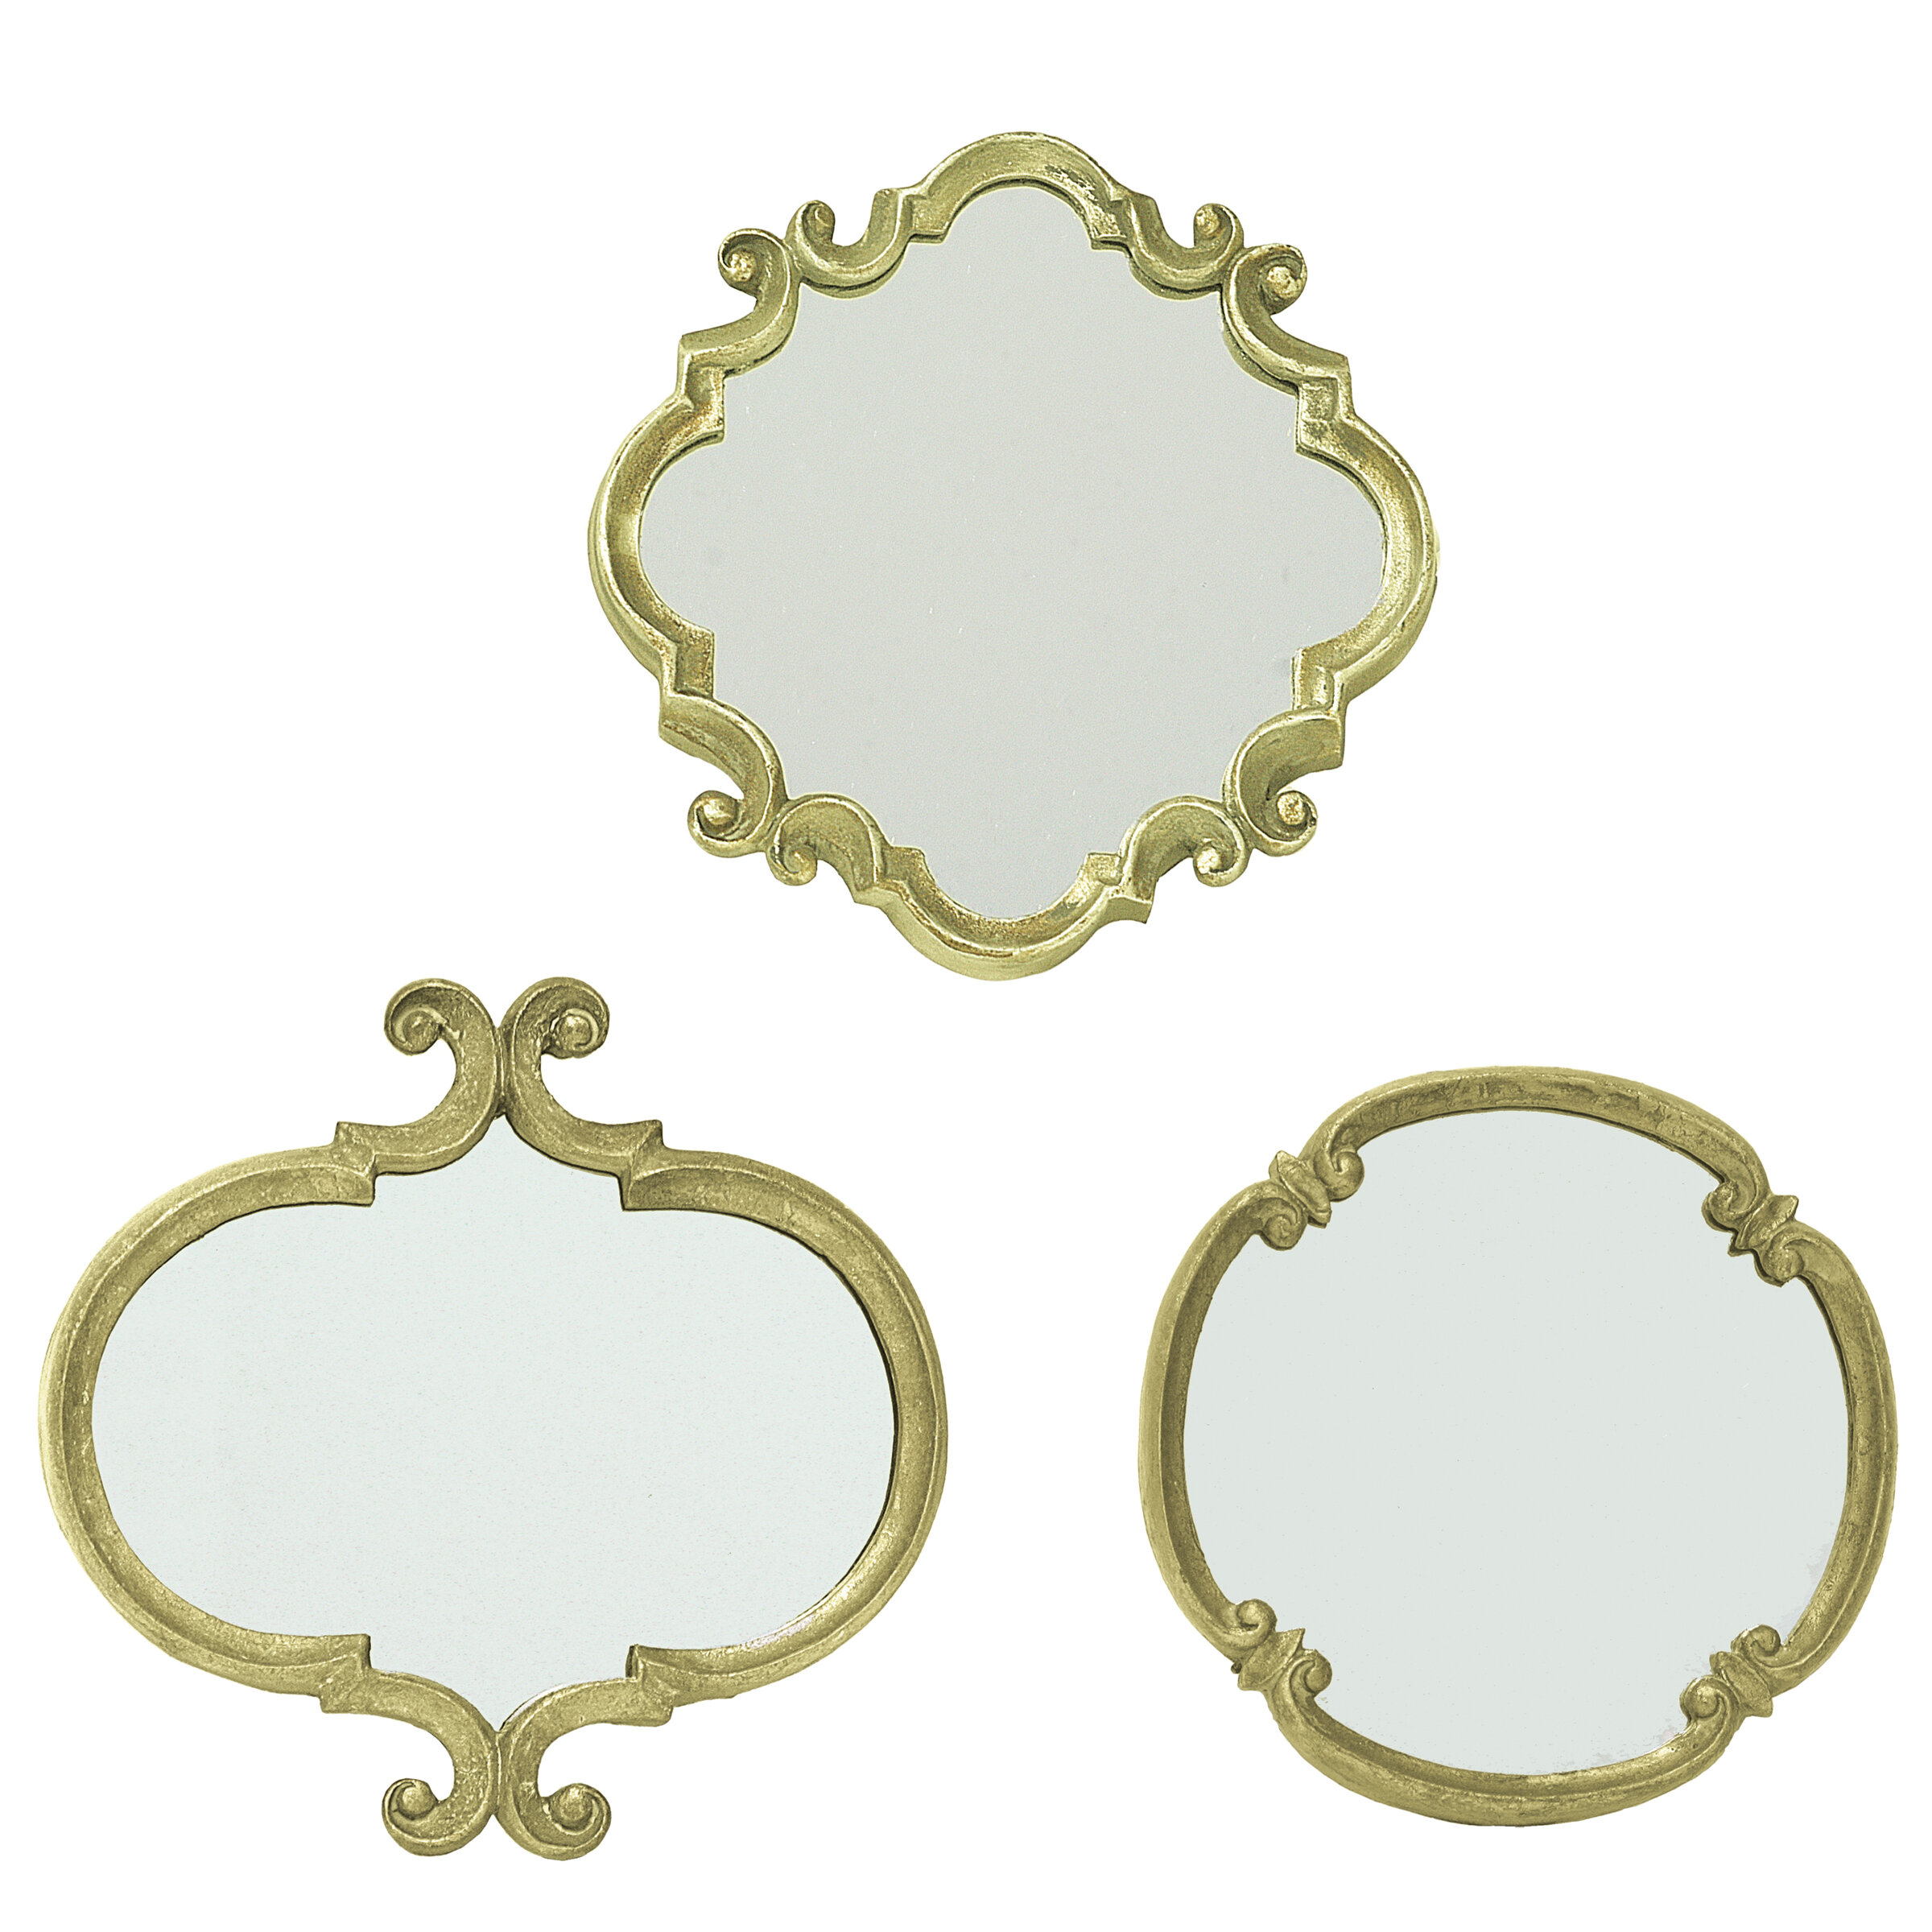 3 Piece Contemporary Meadow Wall Mirror Set Reviews Joss Main